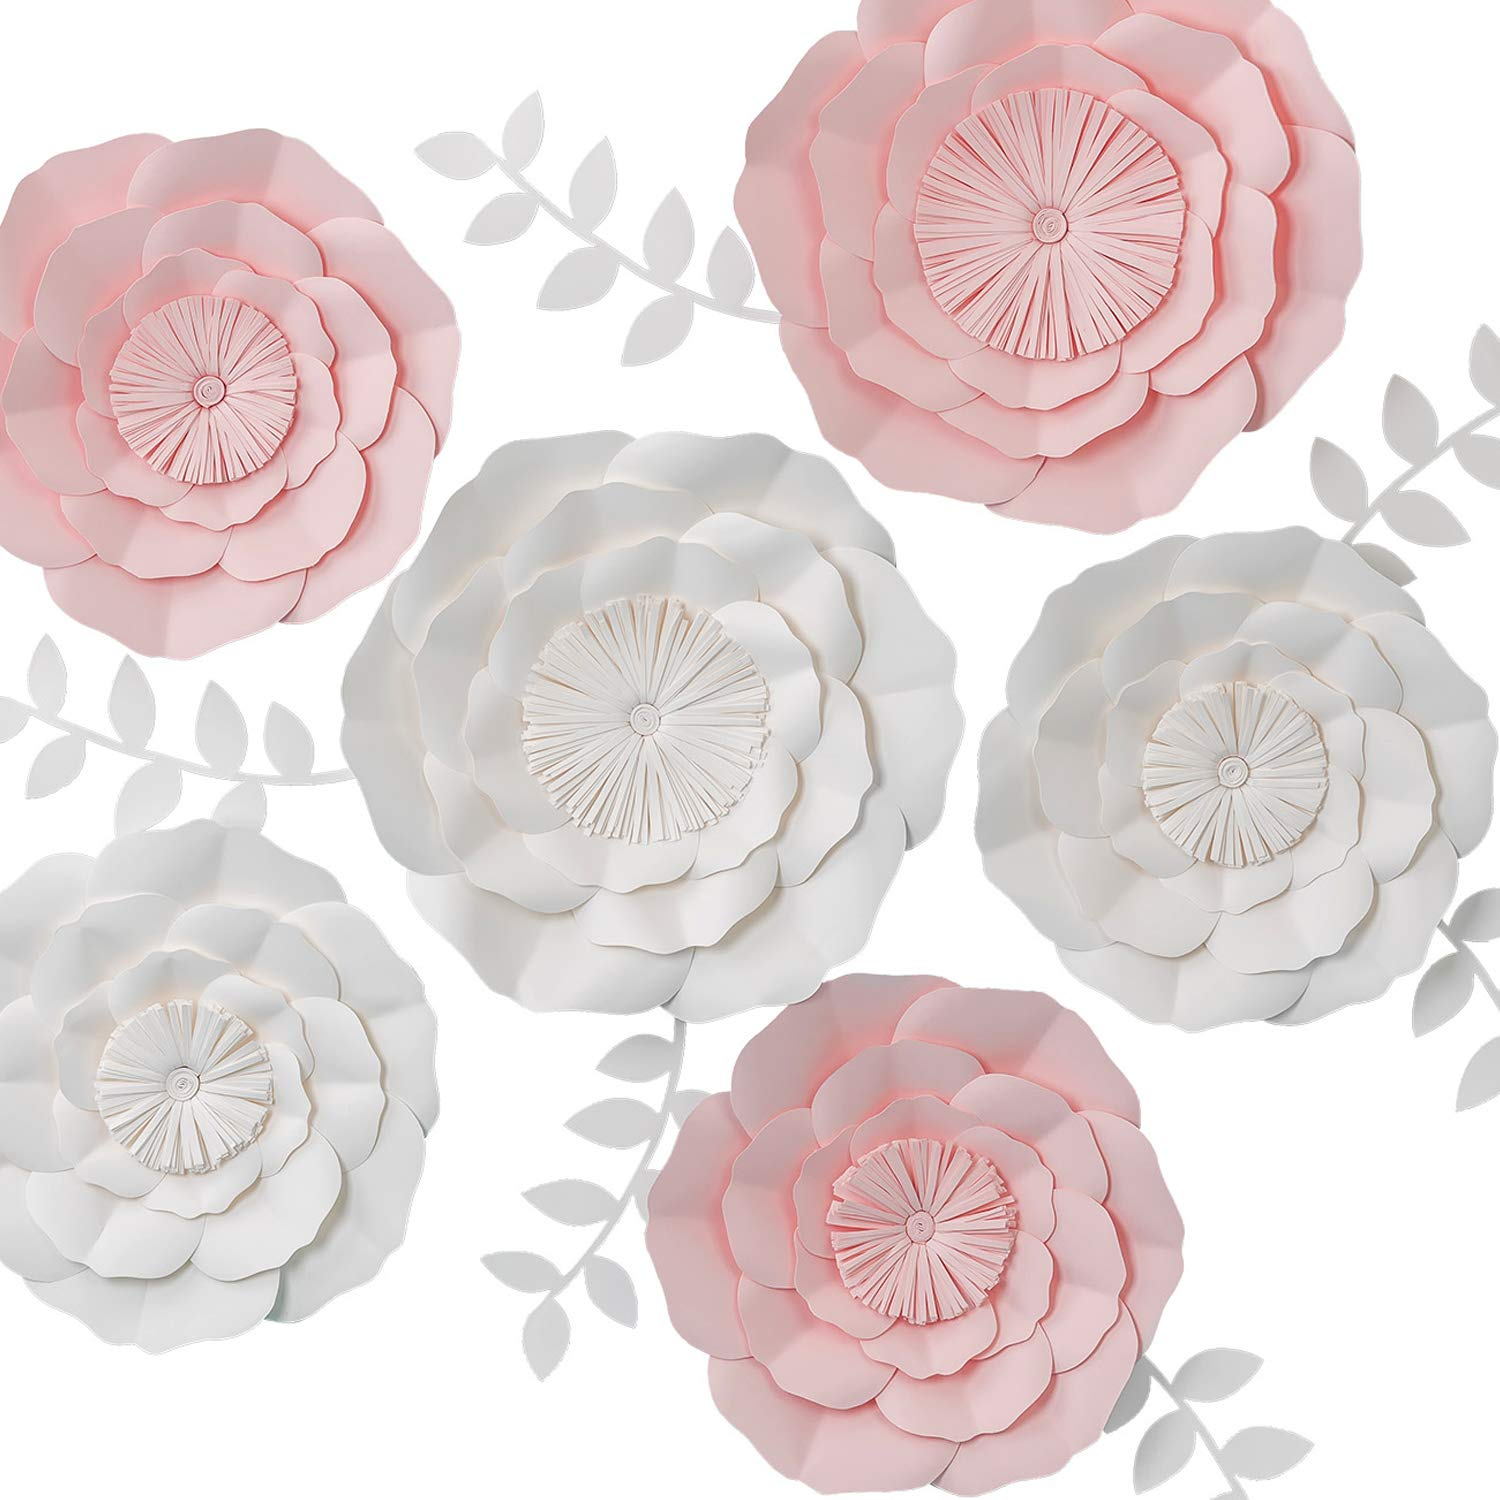 3D Paper Flower Decorations, Giant Paper Flowers, Large Handcrafted Paper Flowers (Pink, White, Set of 6 NO Need Assemble) for Wedding Backdrop, Bridal Shower, Wedding Centerpieces, Nursery Wall Decor